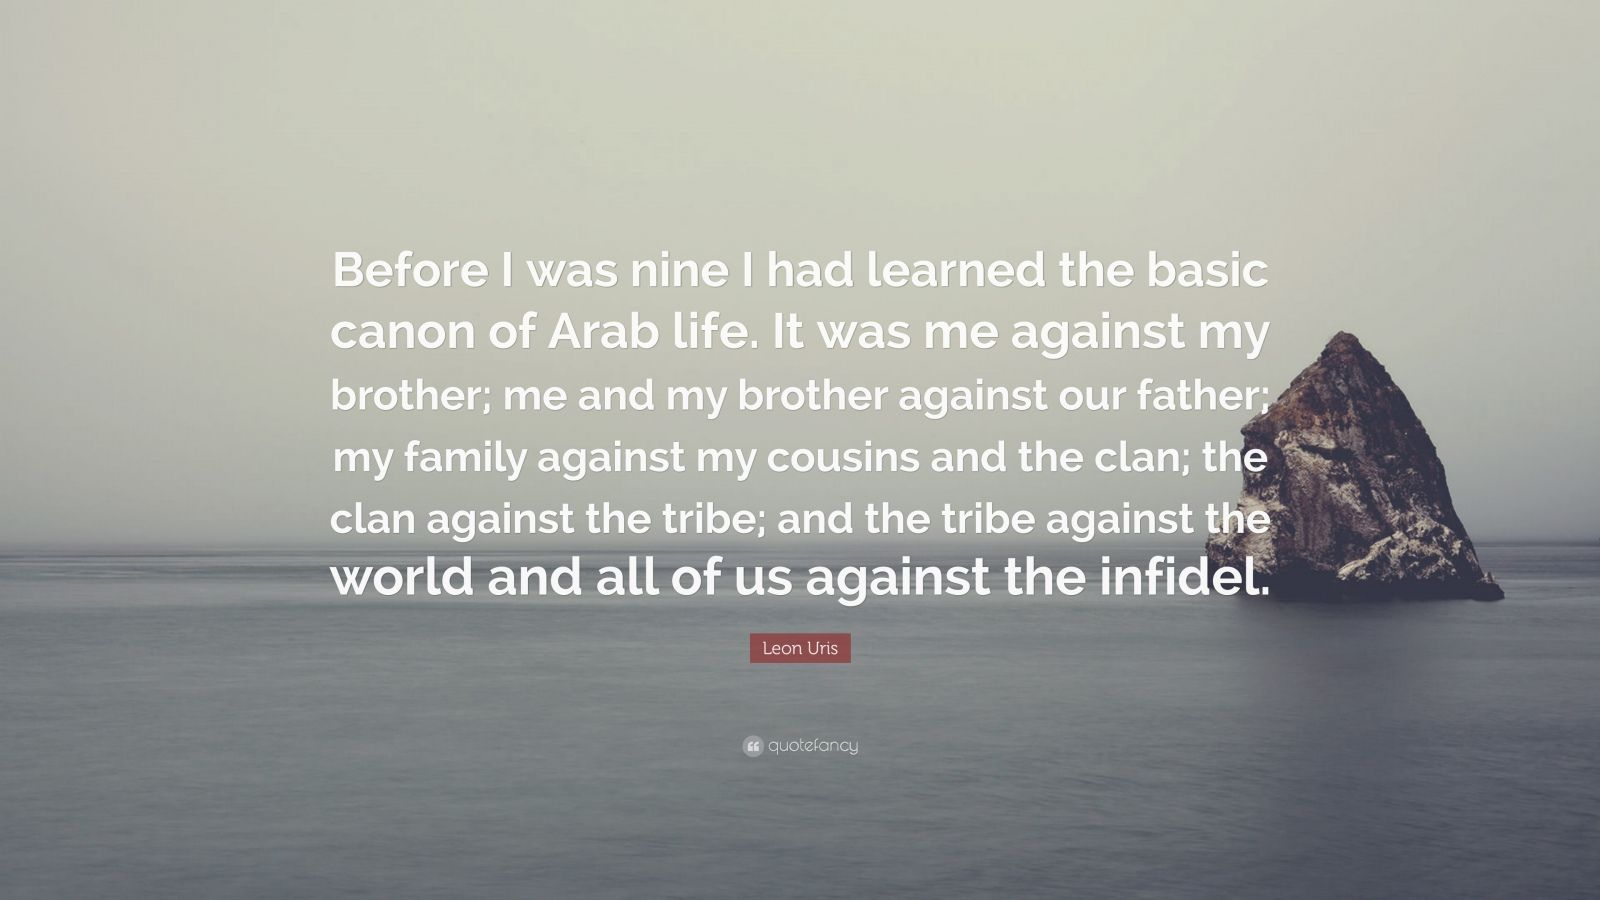 "Leon Uris Quote: ""Before I was nine I had learned the basic canon of Arab life. It was me against my brother; me and my brother against our father; my family against my cousins and the clan; the clan against the tribe; and the tribe against the world and all of us against the infidel."""